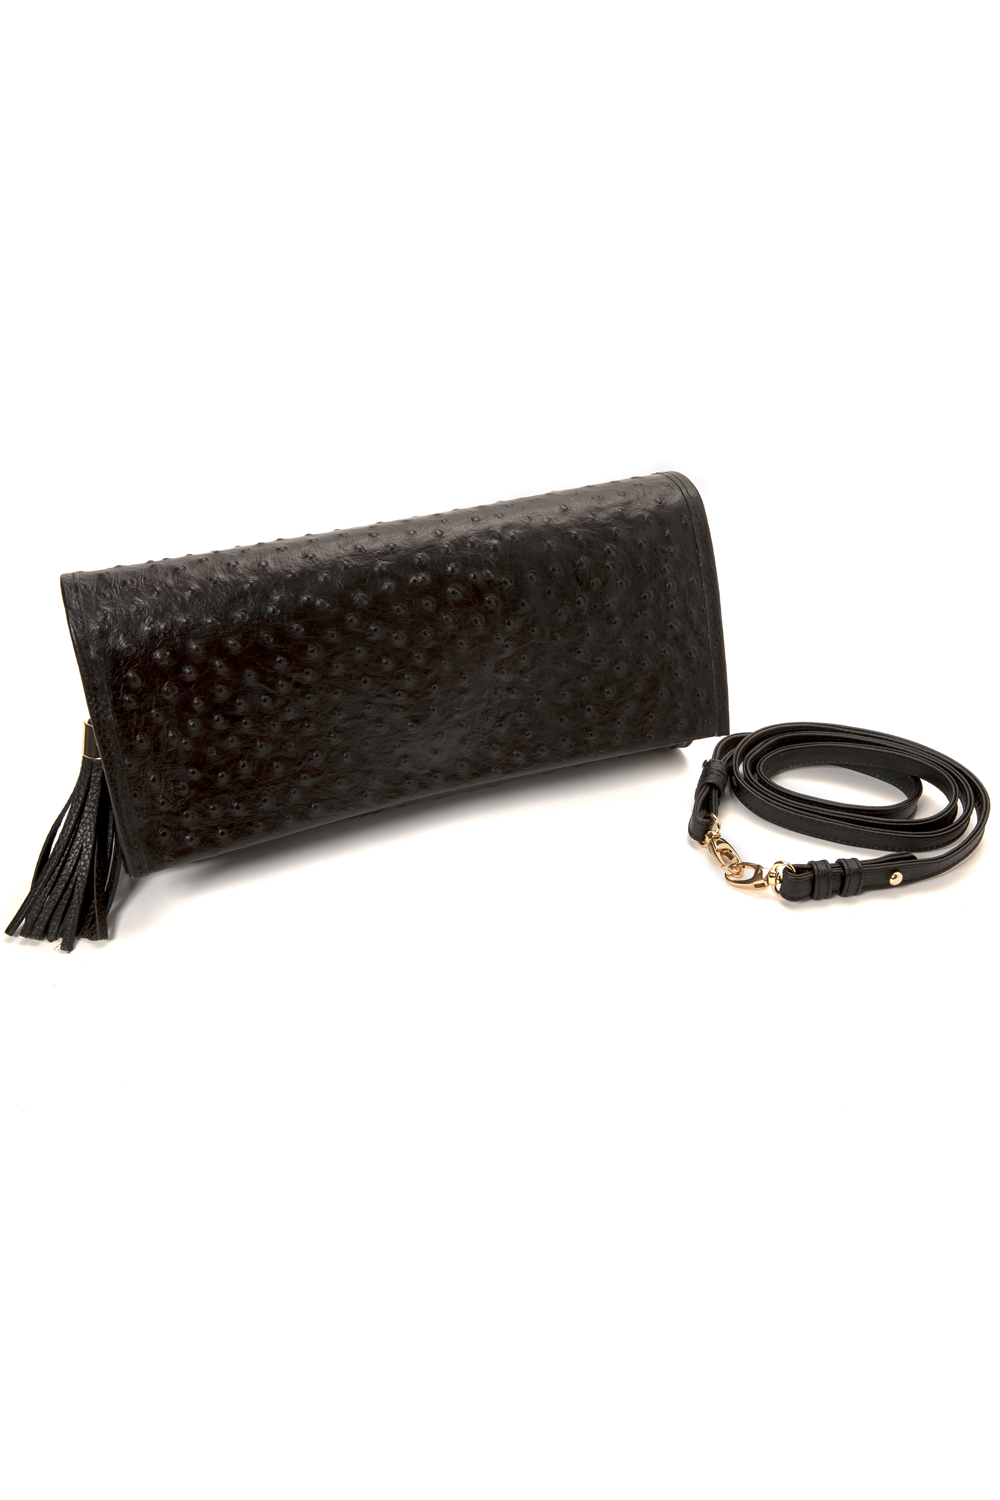 'Cara' Envelope Clutch in Black Ostrich Print Leather | Mel Boteri | Side Strap View